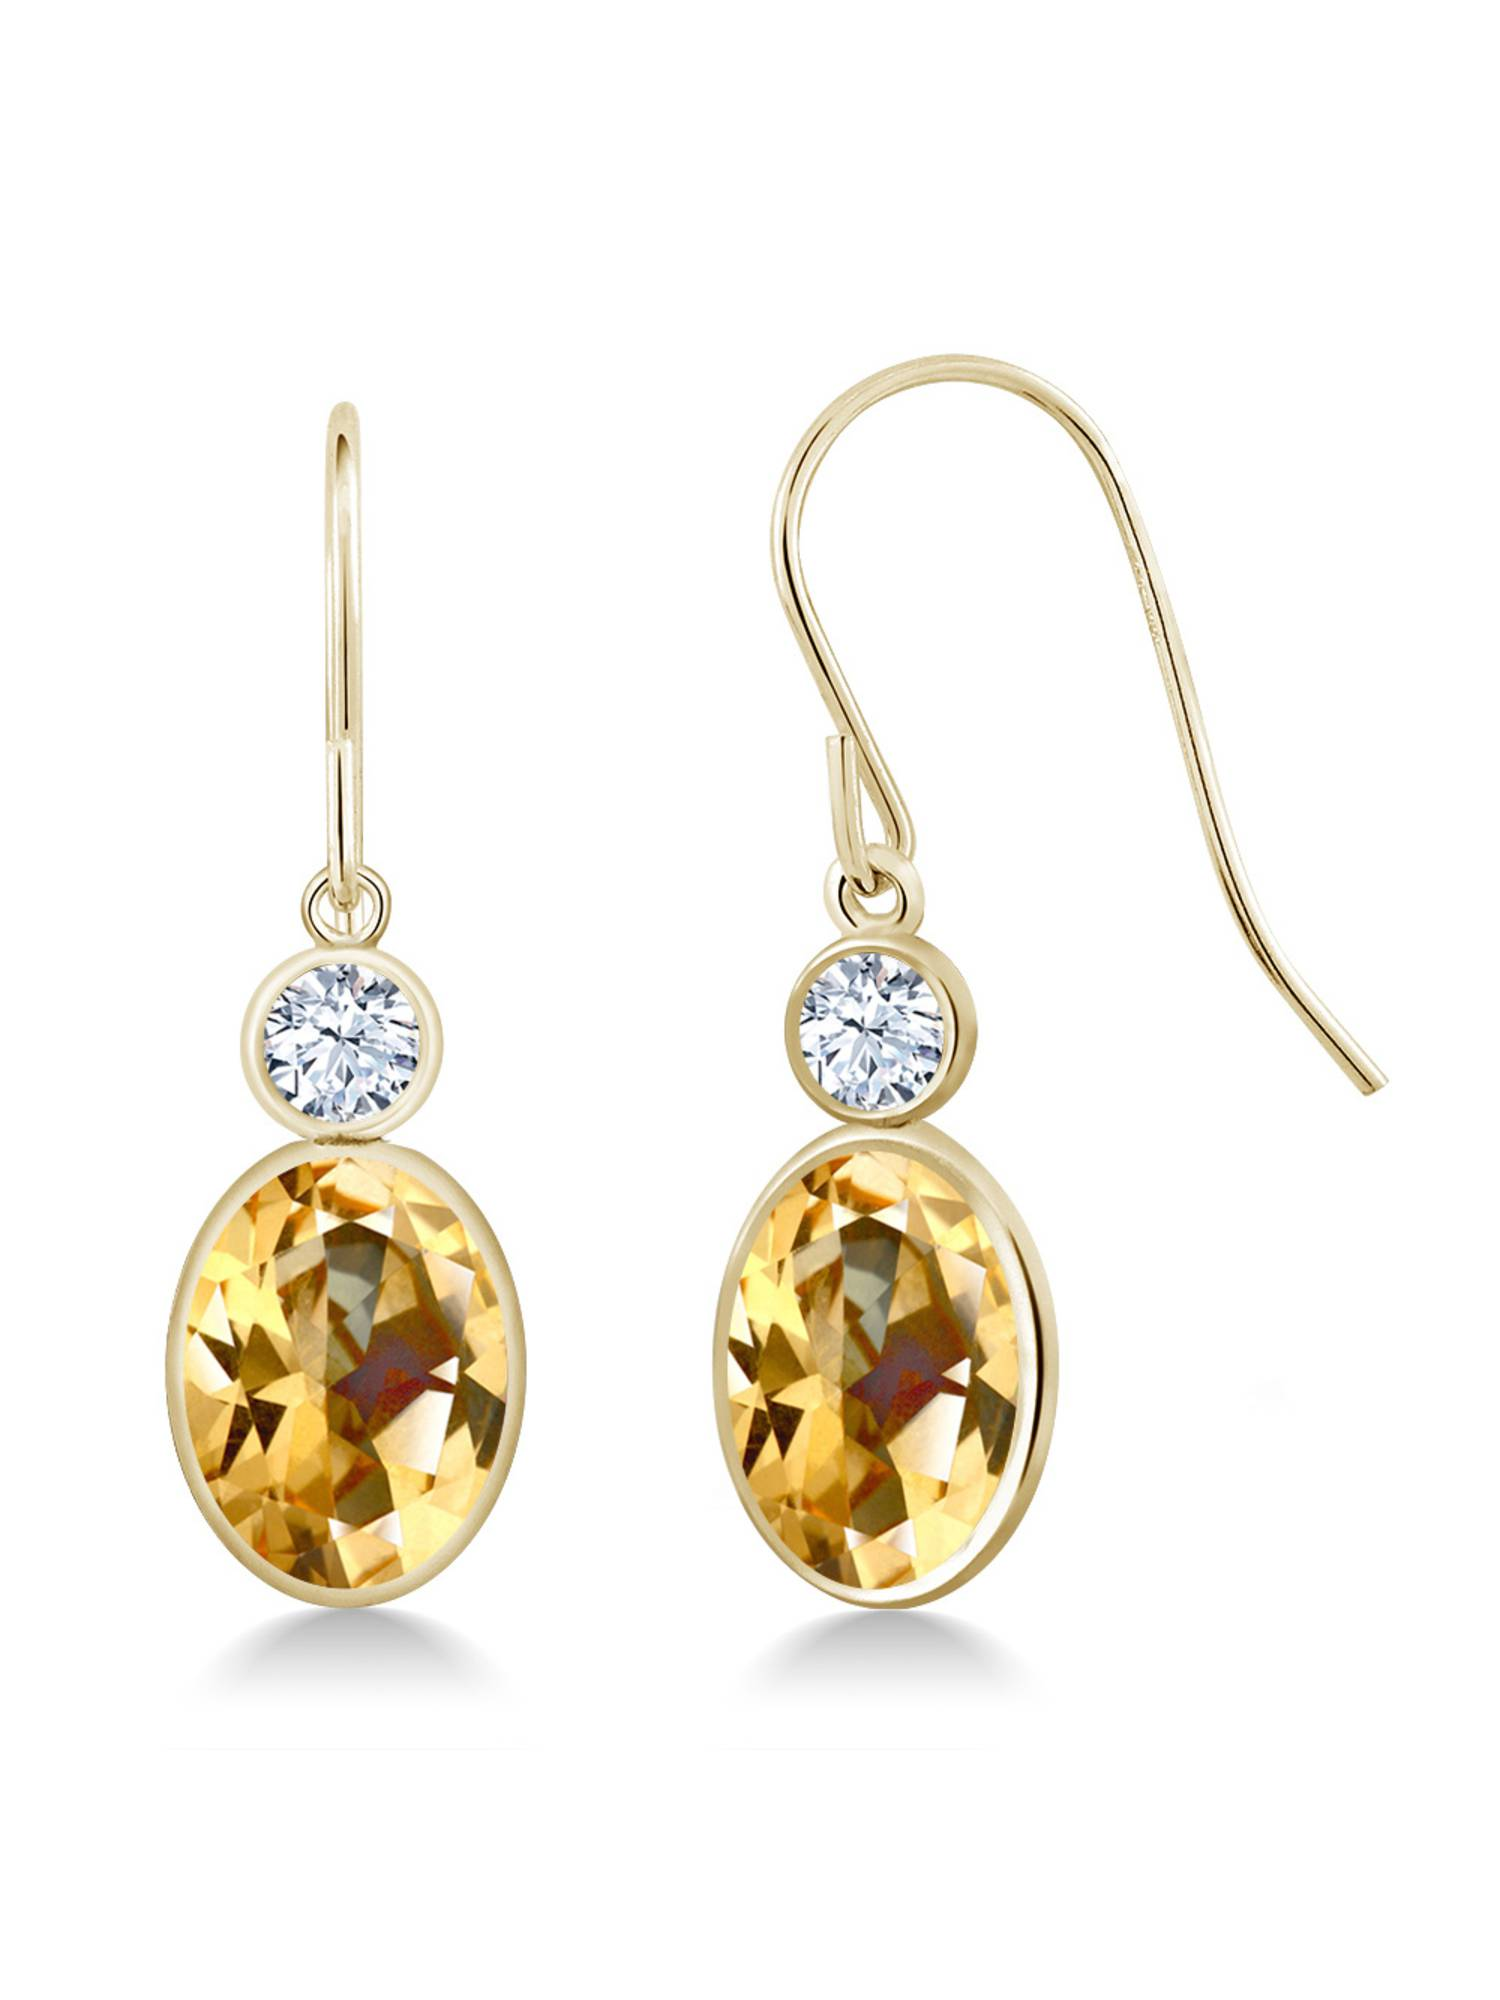 14K Yellow Gold Earrings Set with Oval Honey Topaz from Swarovski by